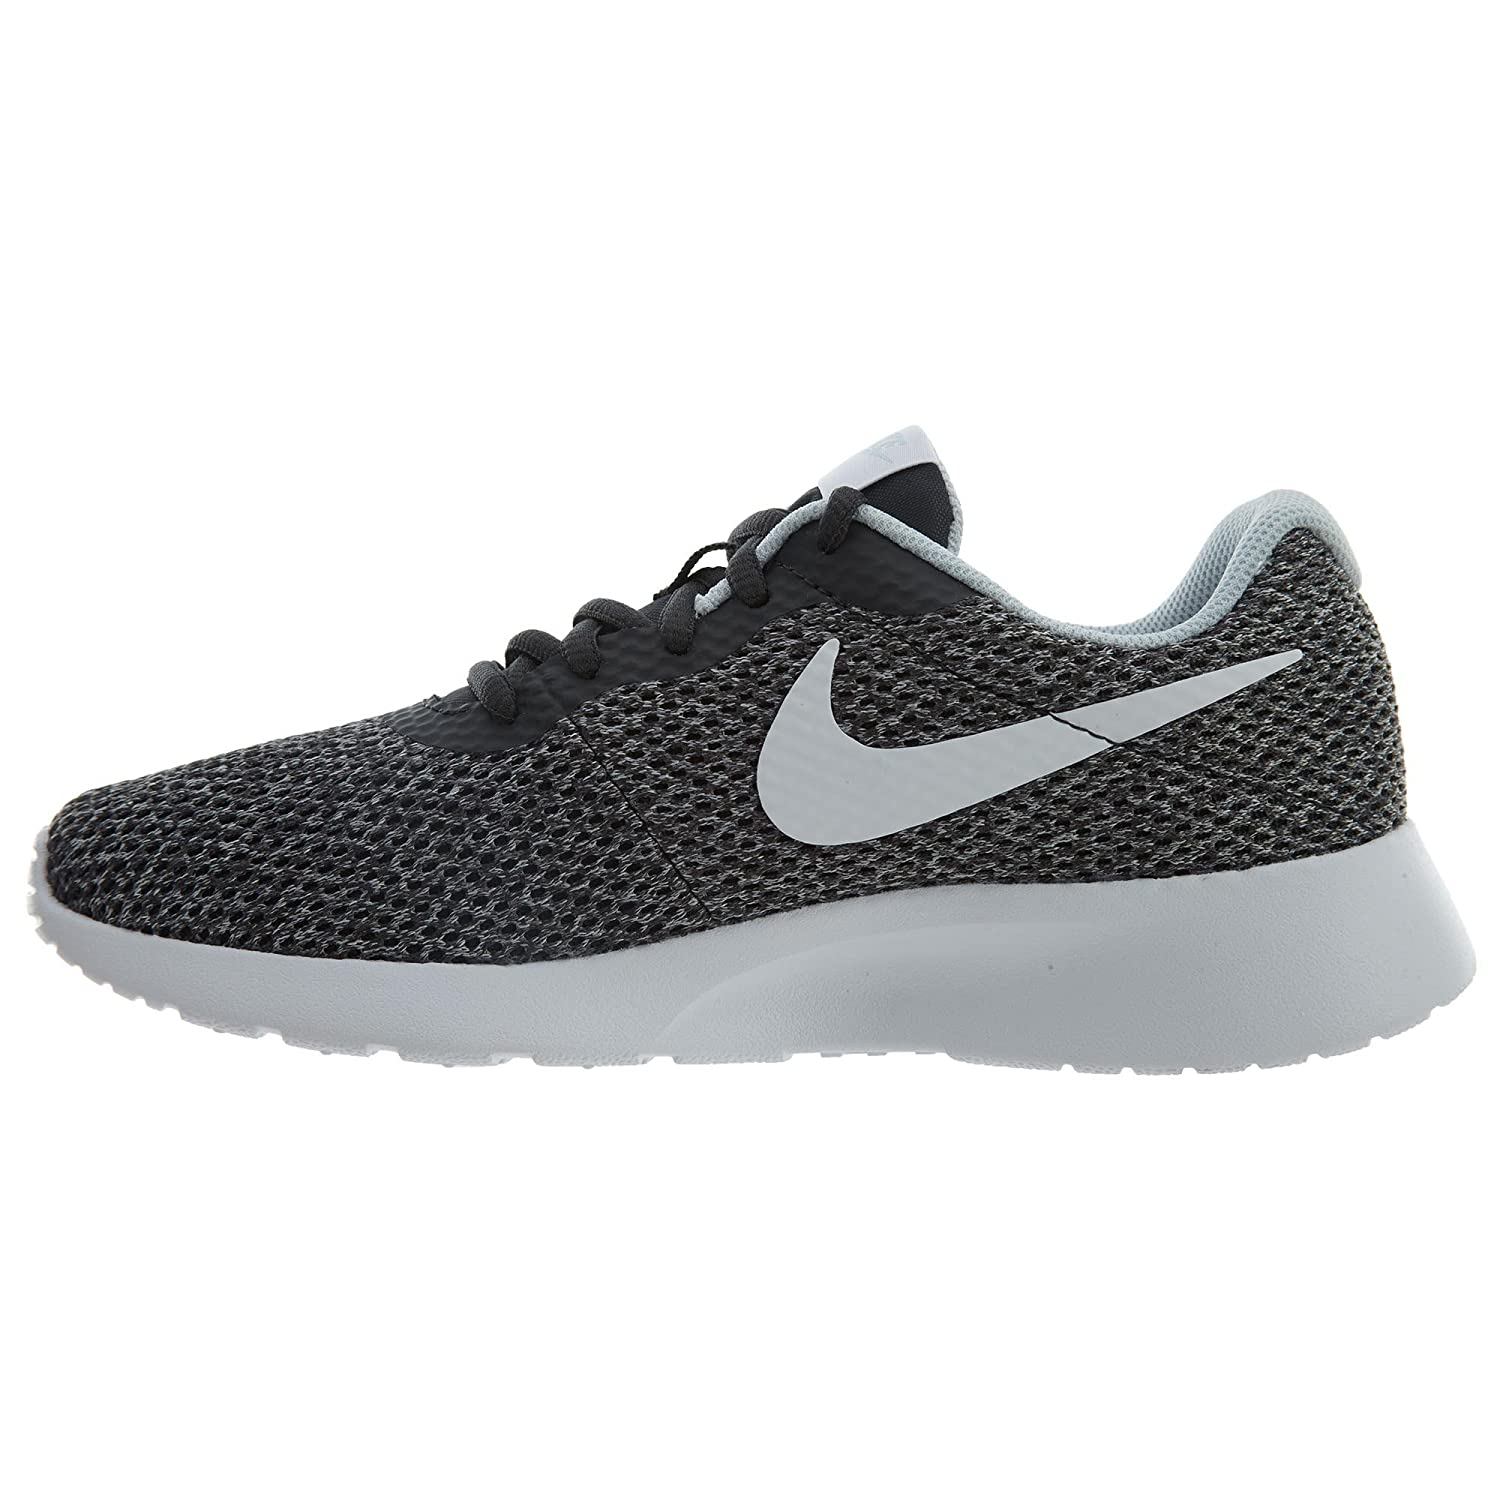 NIKE Women's Tanjun Running Shoes B0716JWDJN 9.5 B(M) US|Anthracite Wht Black Platinum